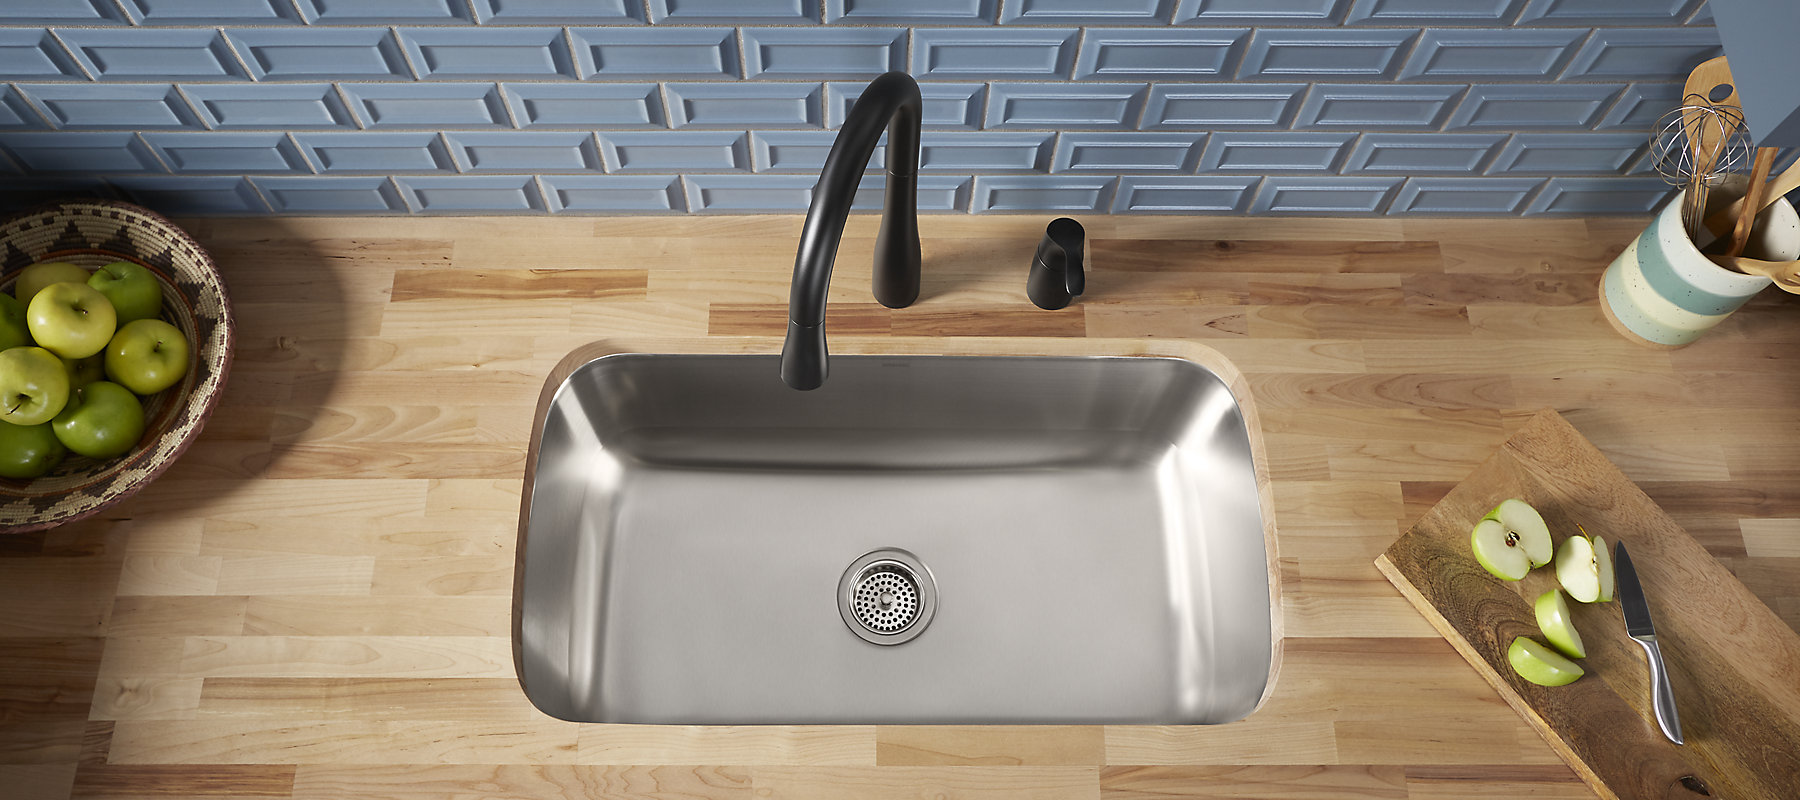 Stainless Sinks | Kitchen Sinks | Care and Cleaning ...